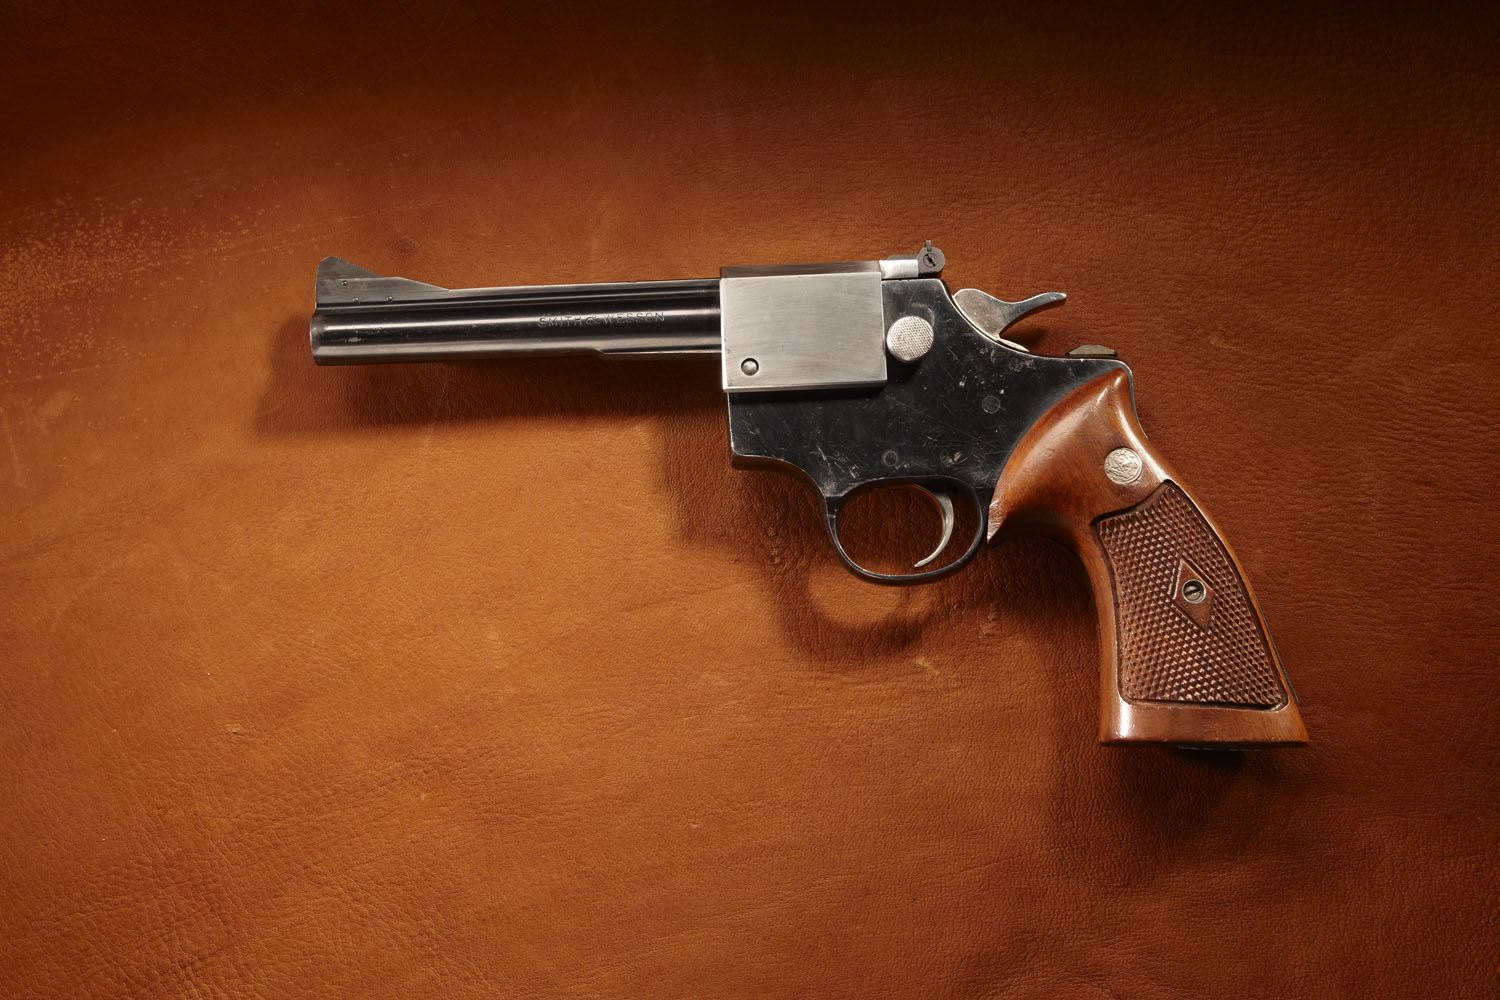 W. H. B. Smith WSP 65 Prototype Single Shot Pistol